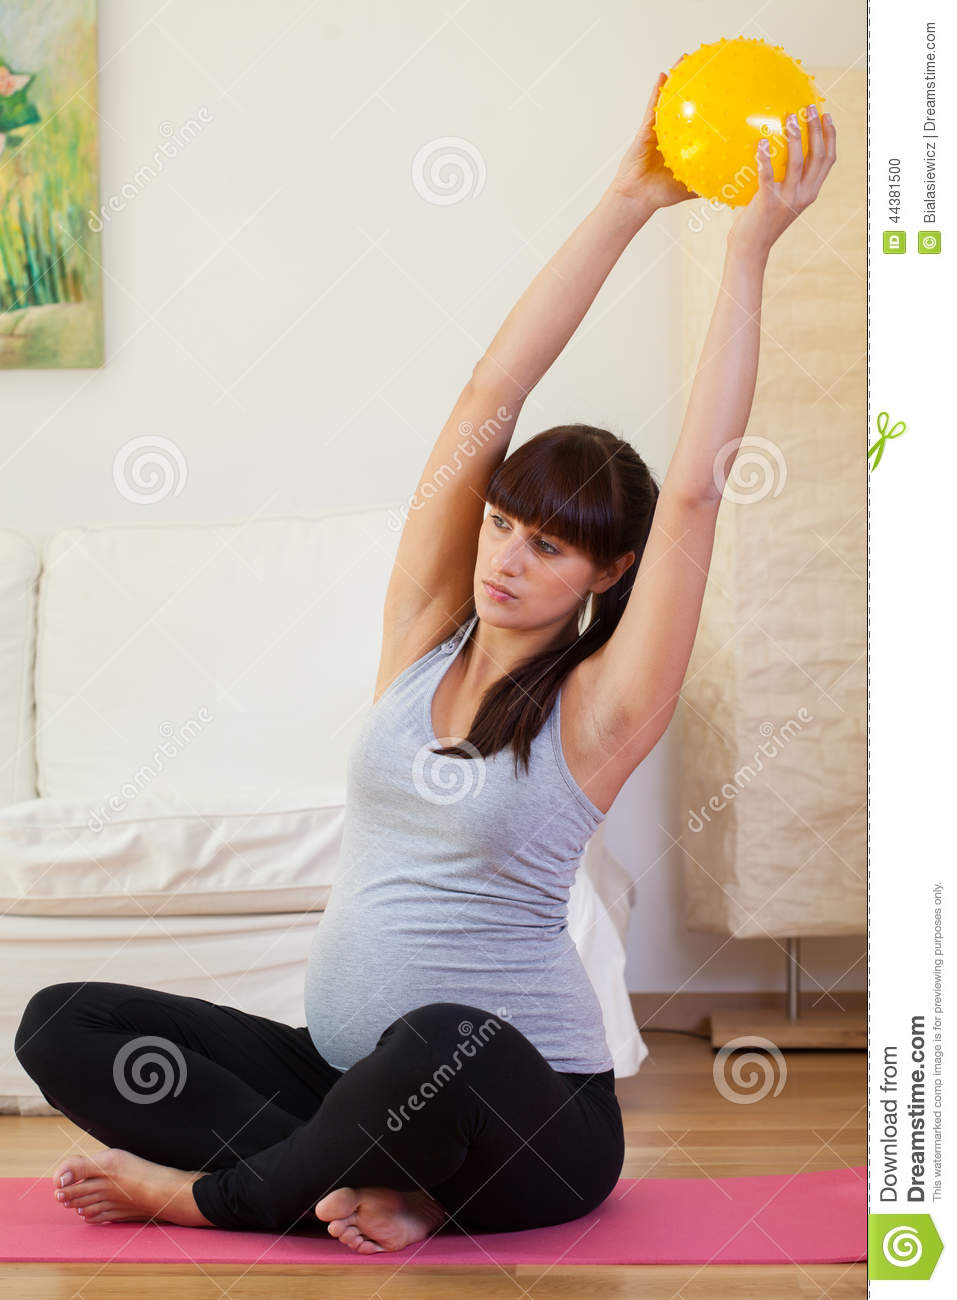 Gravid woman doing exercises at home